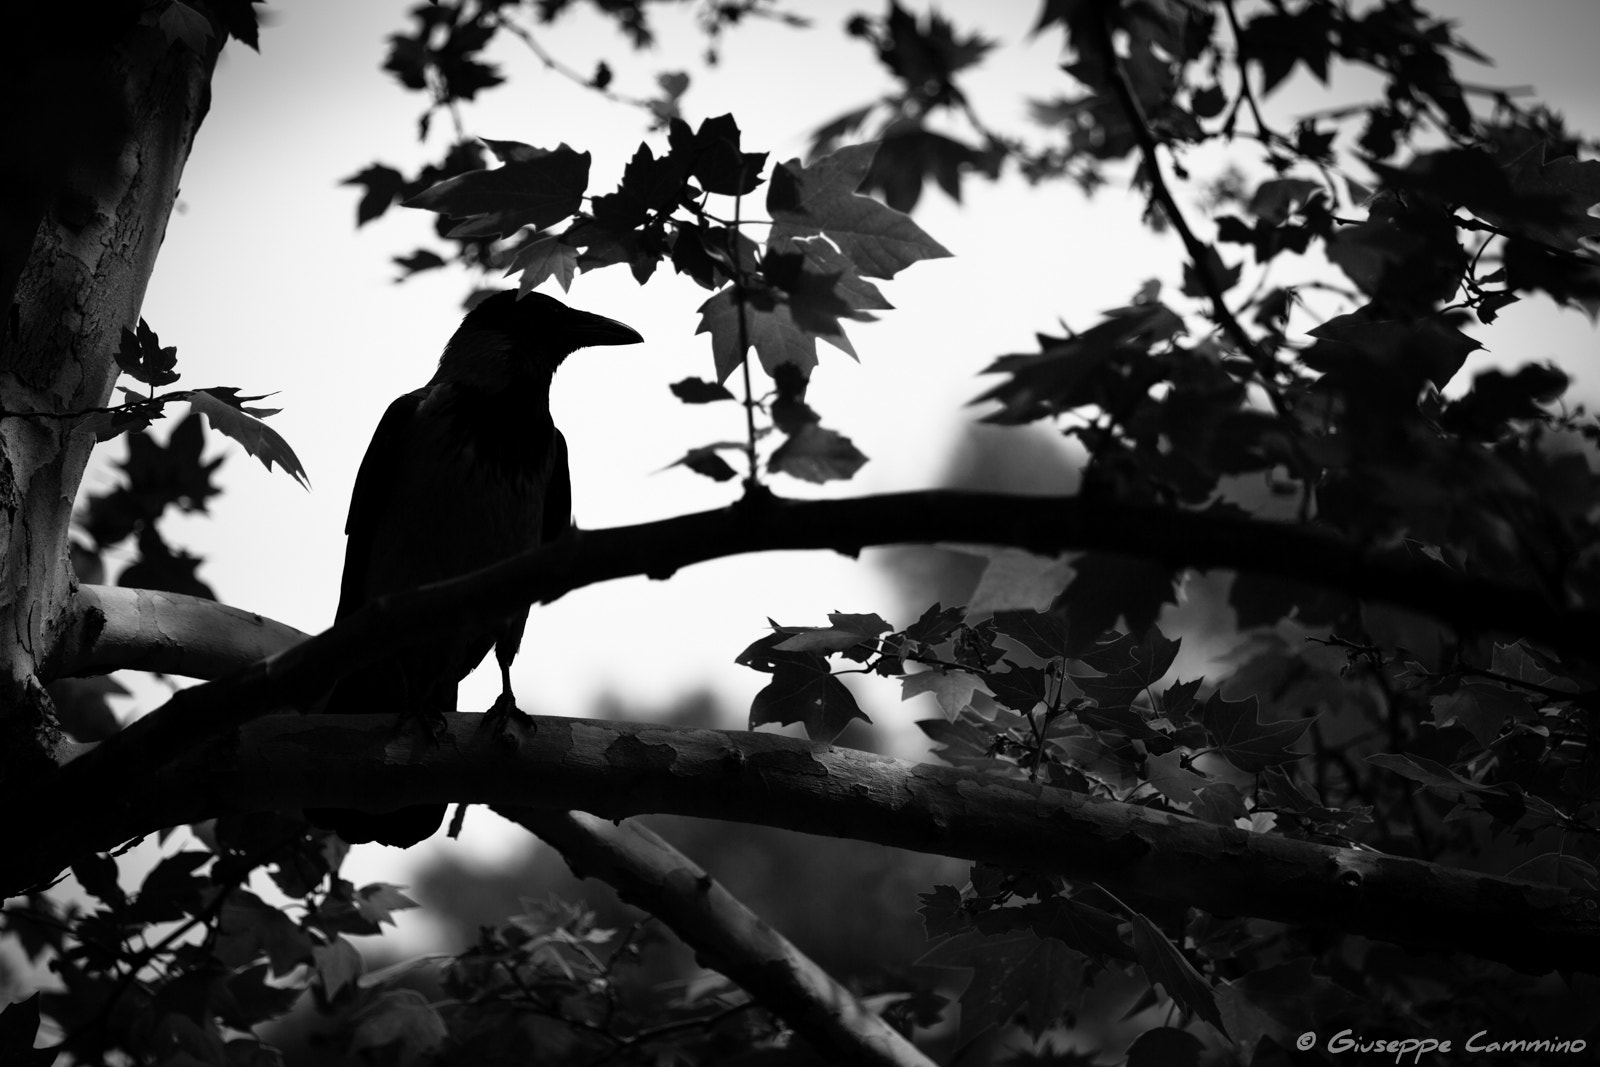 Photograph Villa Borghese - Crow by Giuseppe Cammino on 500px